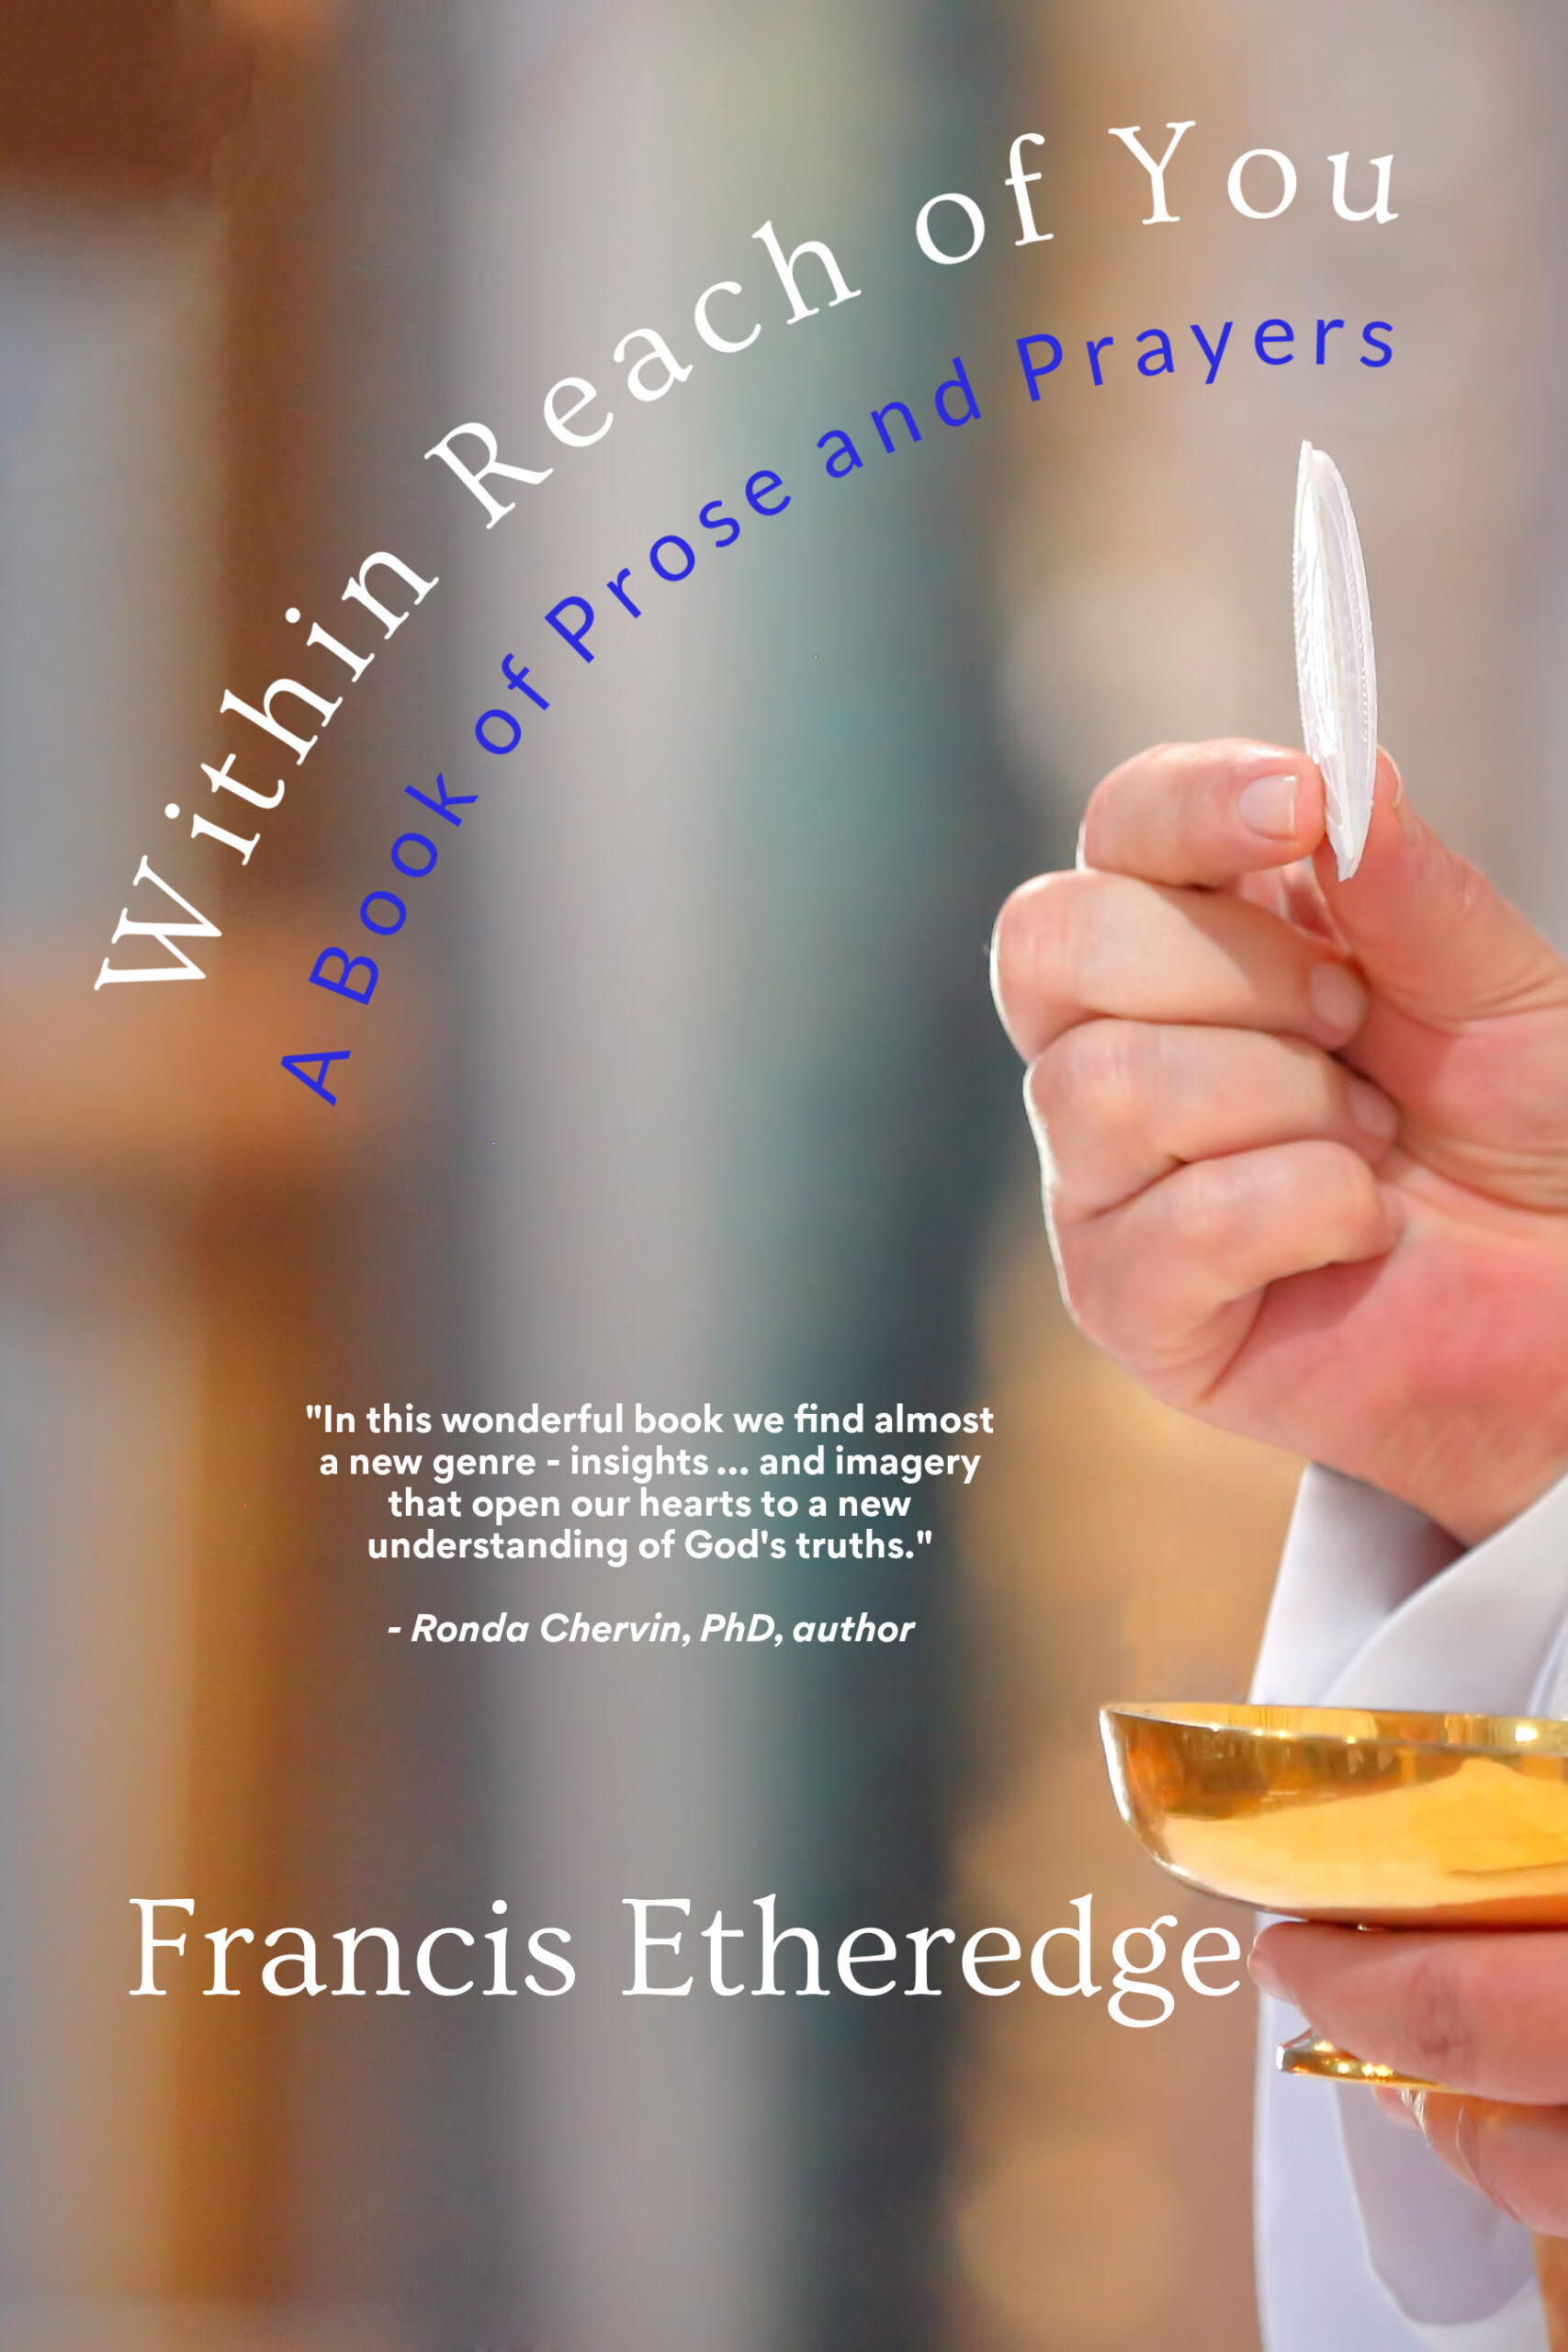 Within Reach of You: A Book of Prose and Prayers by Francis Etheredge